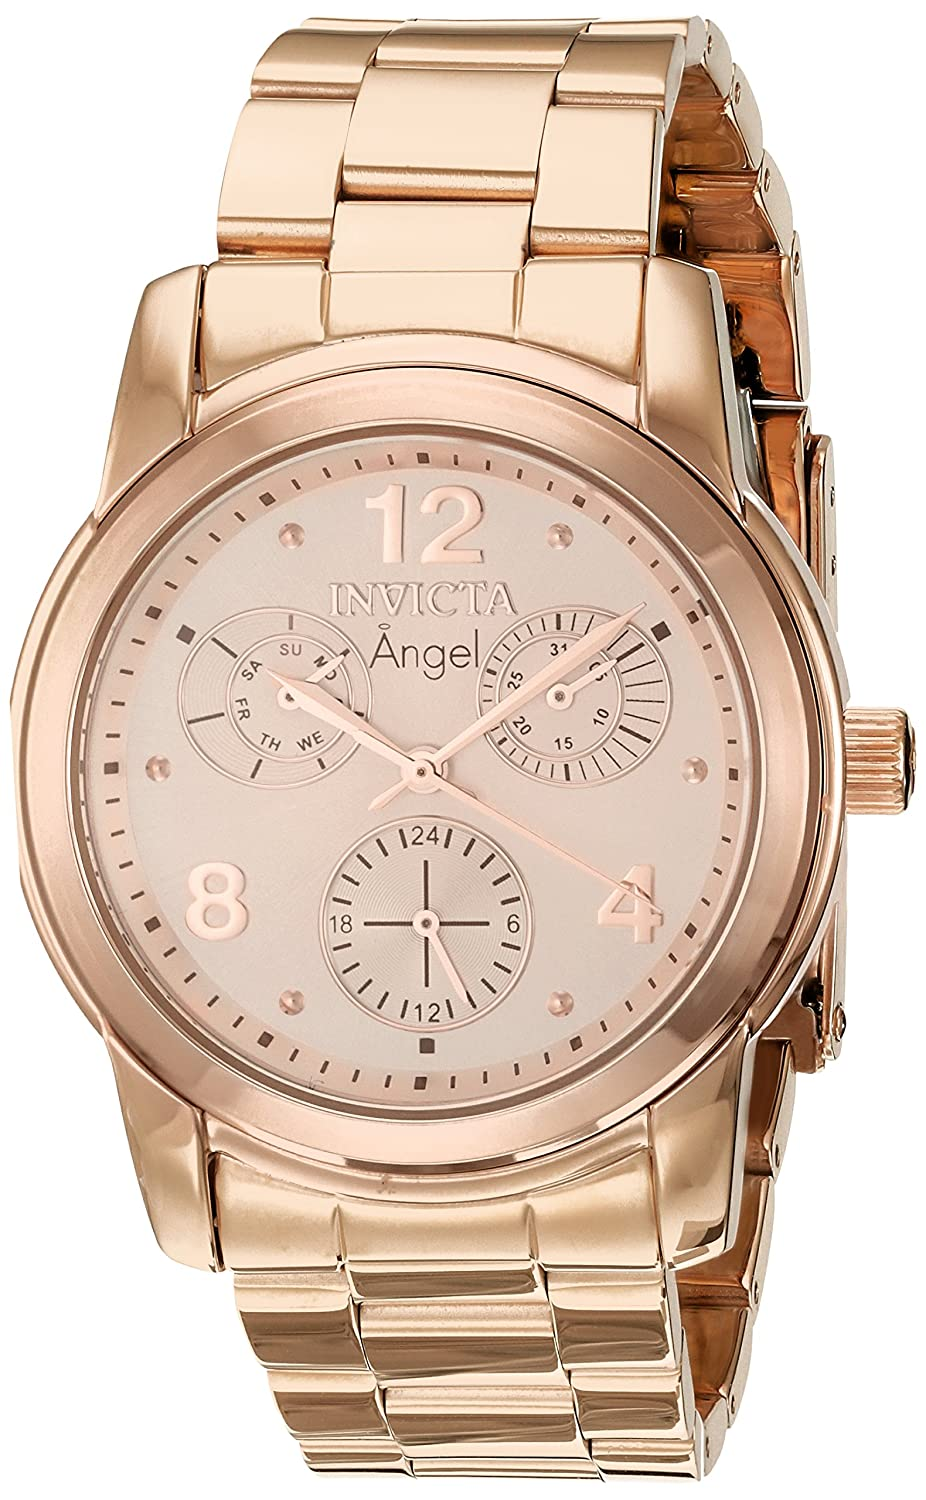 Invicta Women s Angel Quartz Watch with Stainless-Steel Strap, Rose Gold, 20 Model 21687